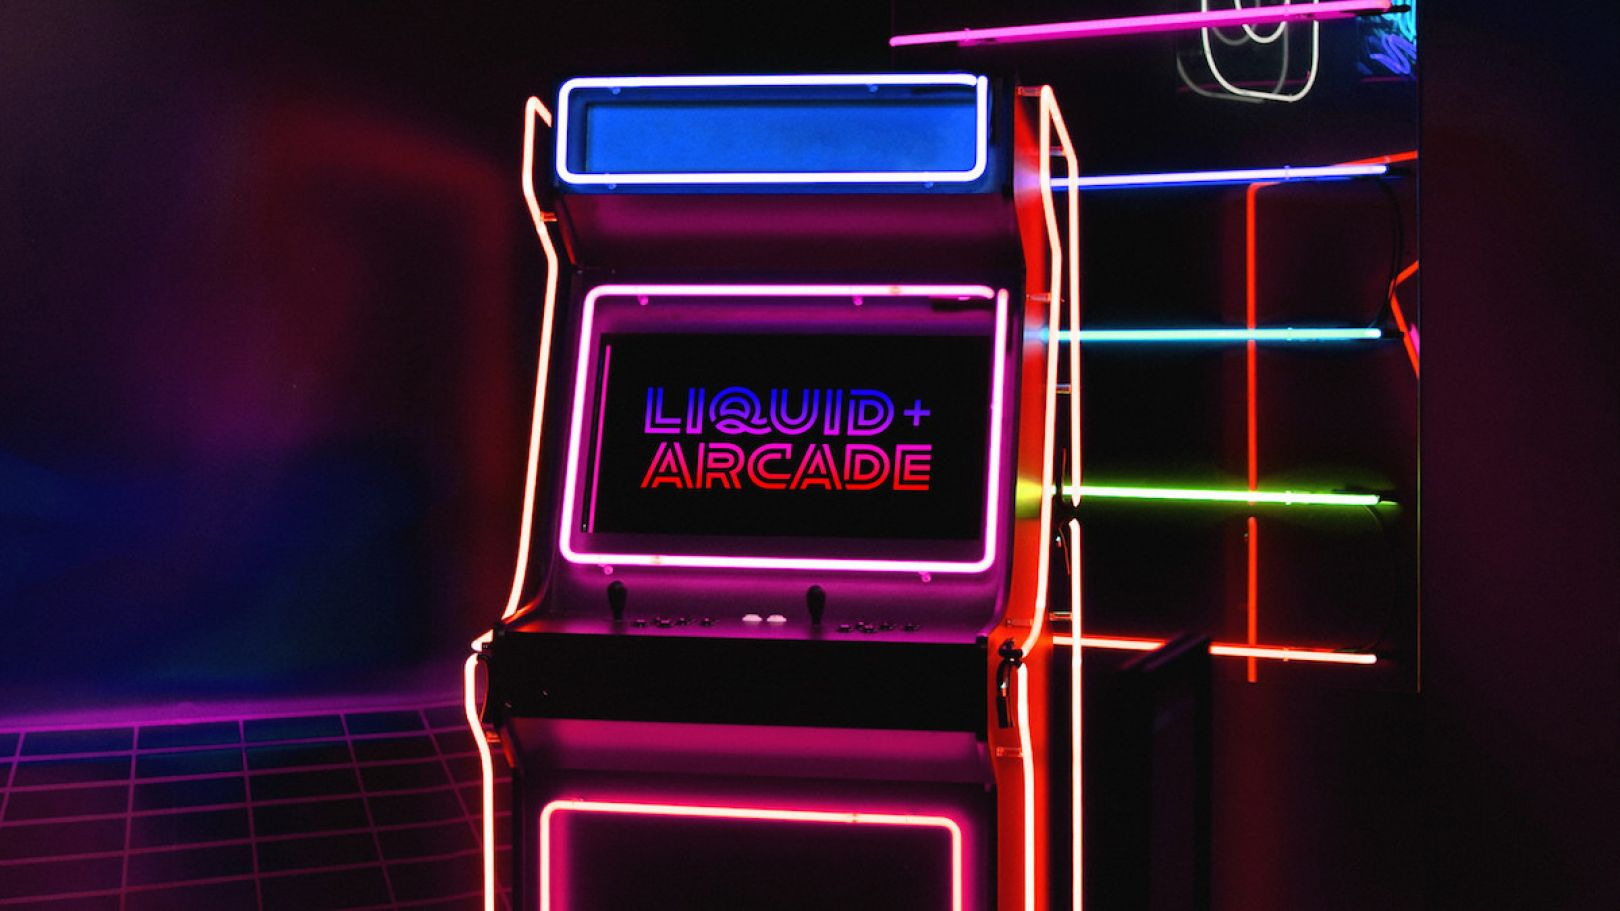 The new branding for Liquid Agency centers around a neon, retro gaming aesthetic